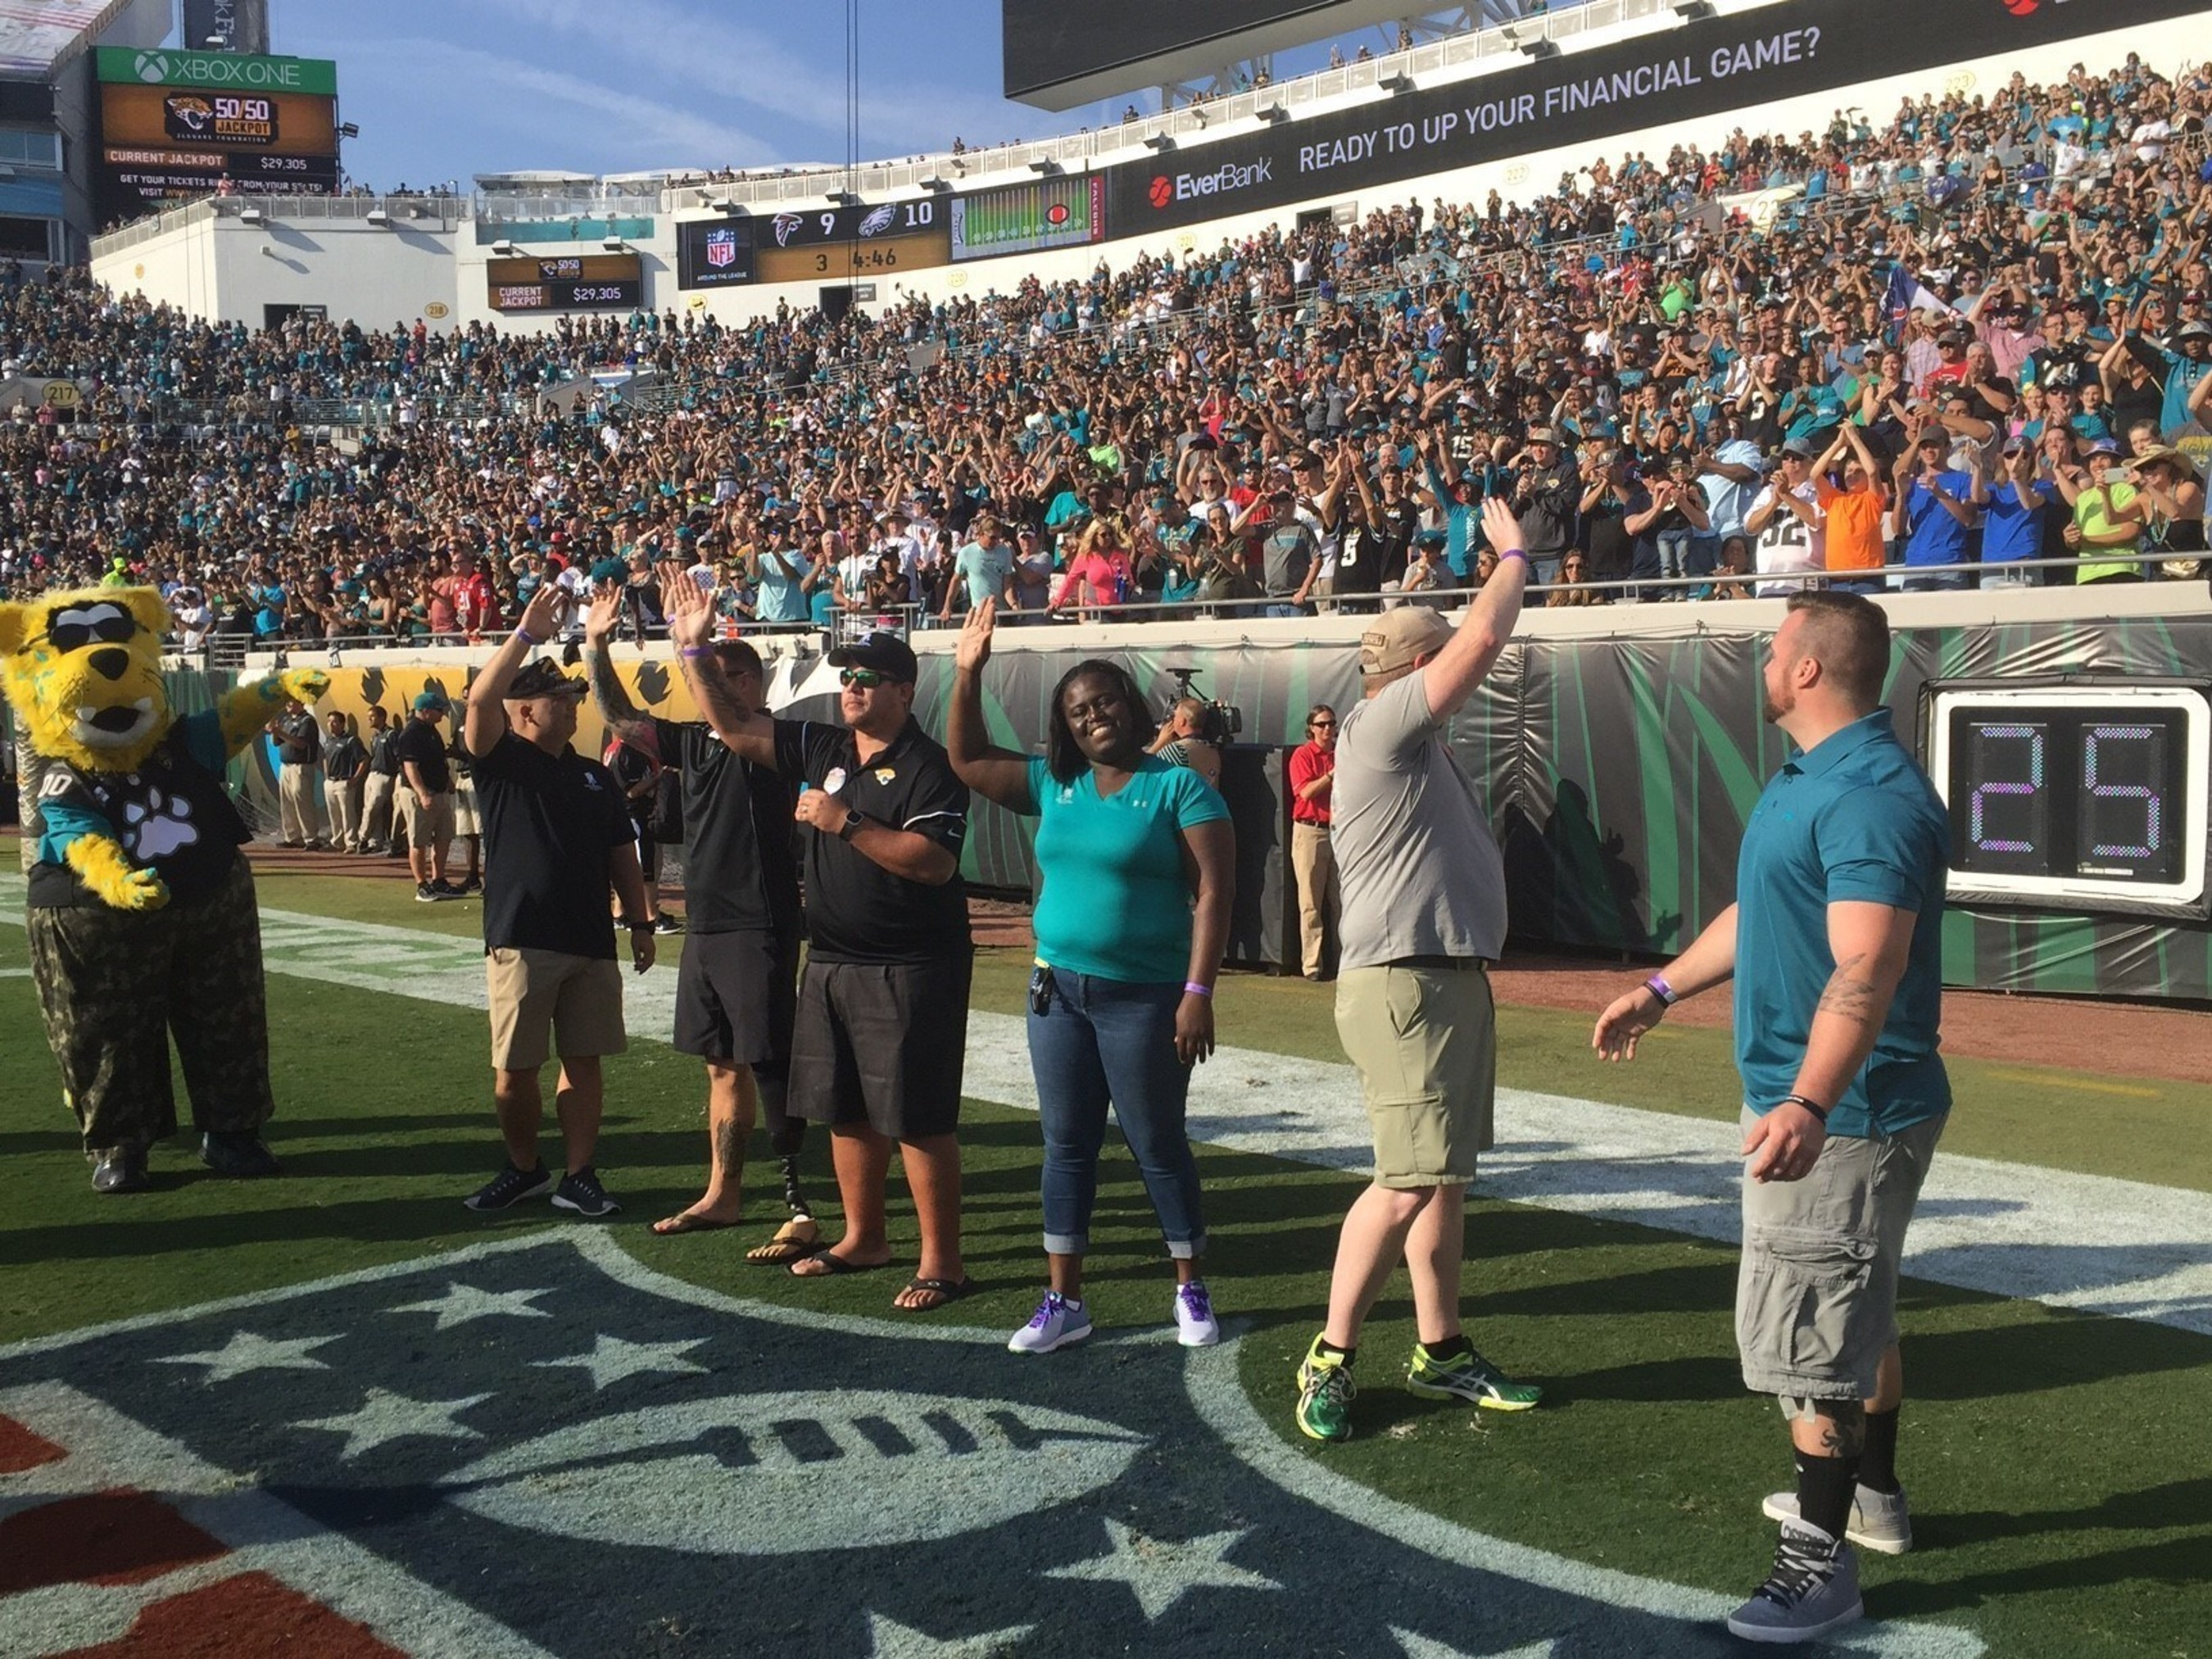 Wounded Warrior Project veteran Yvette Francis was honored with her fellow service members at an NFL Salute to Service Game Veterans Day weekend. Francis served 11 years in the Army and served two tours in Iraq.